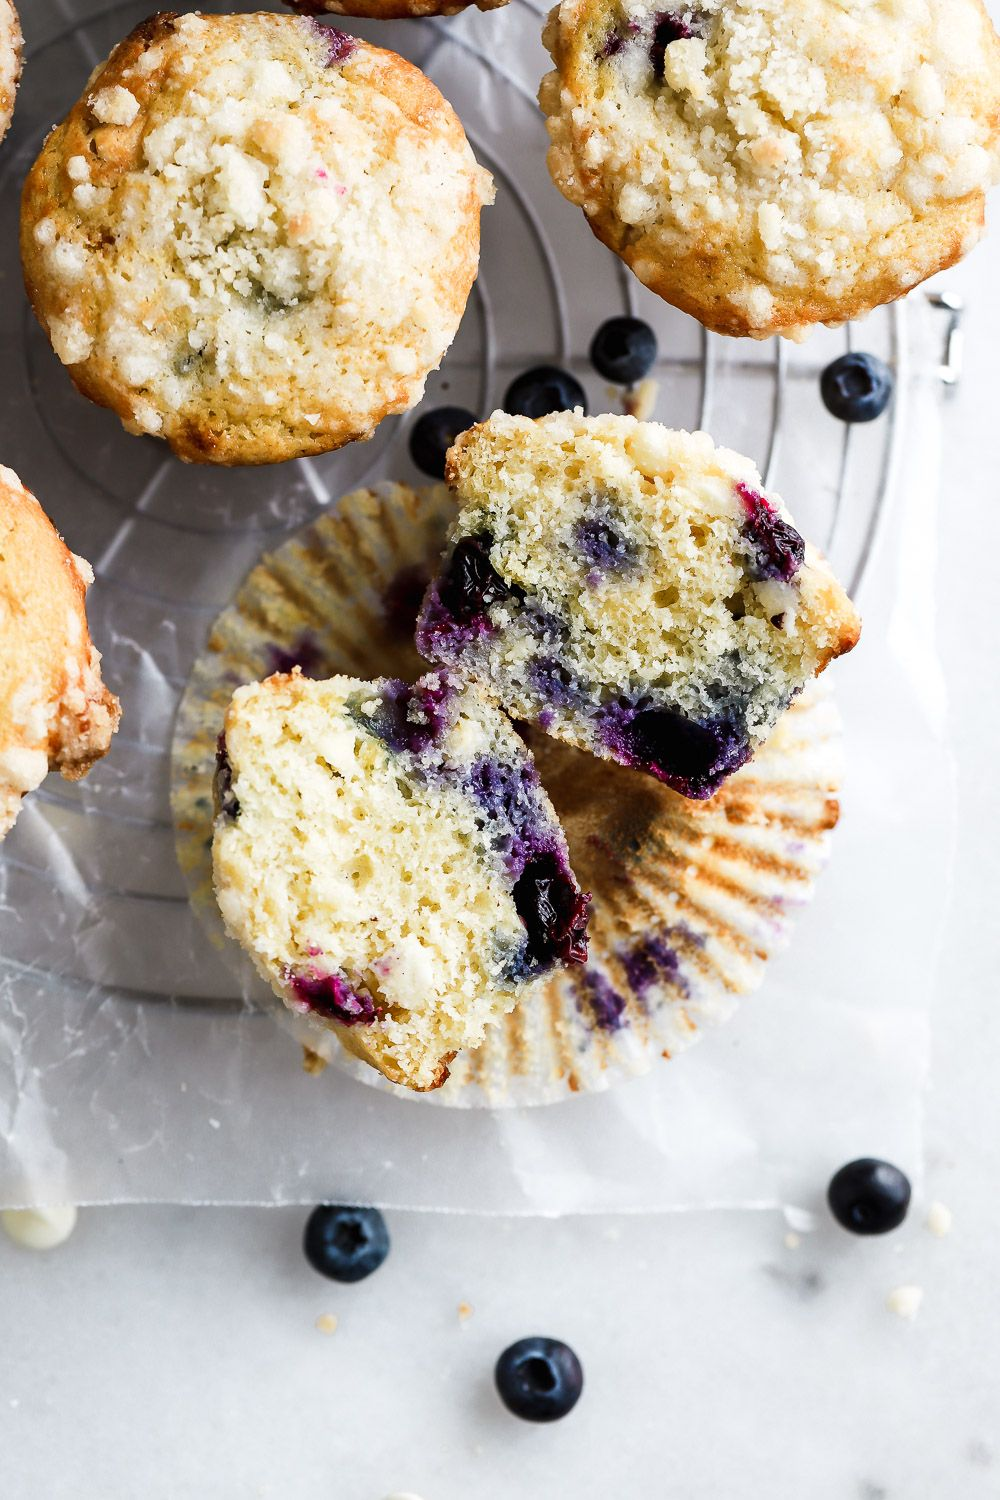 Buttermilk Blueberry Streusel Muffins With White Chocolate Recipe In 2020 Blue Berry Muffins Chocolate And Blueberry Muffins Muffin Recipes Blueberry